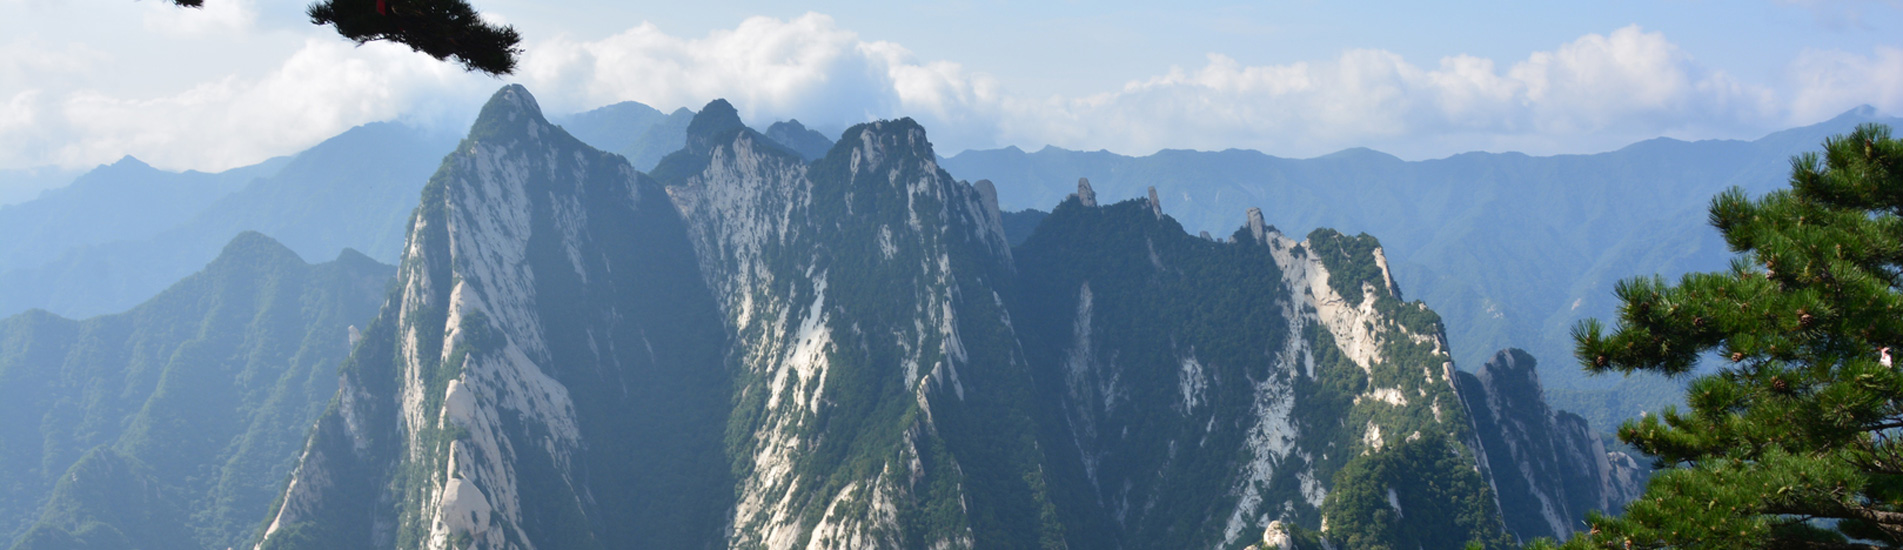 the beautiful Mount Hua in Xian